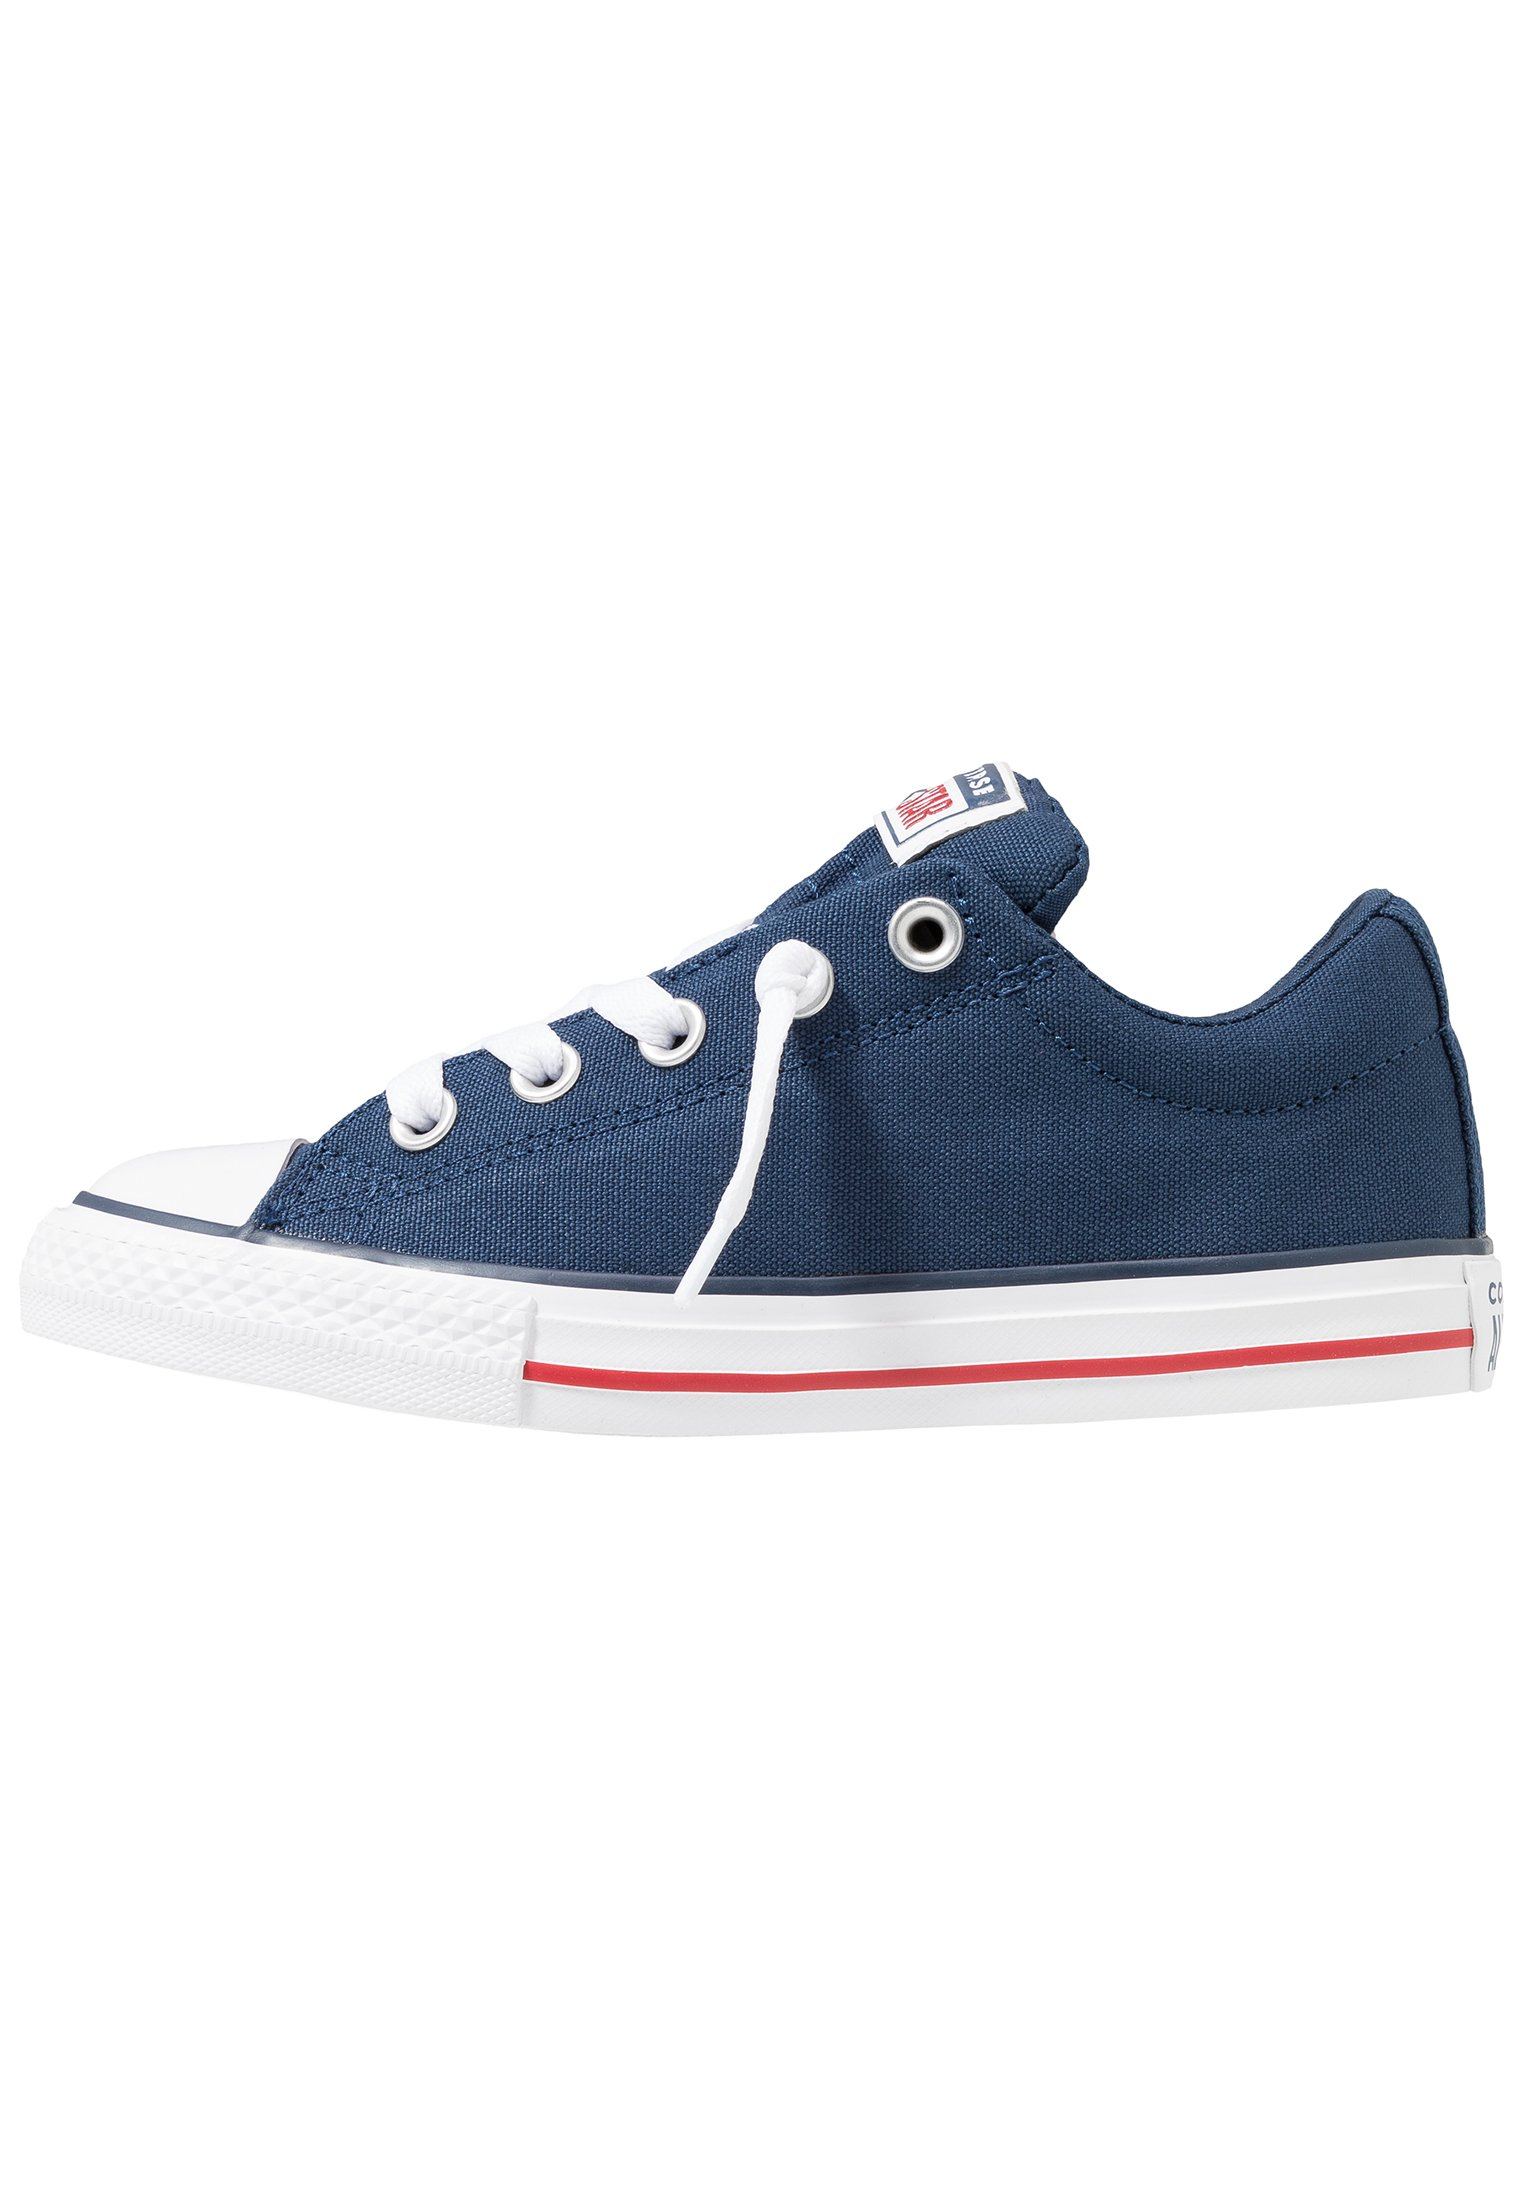 Converse Chuck Taylor All Star Street Slip On Sneaker